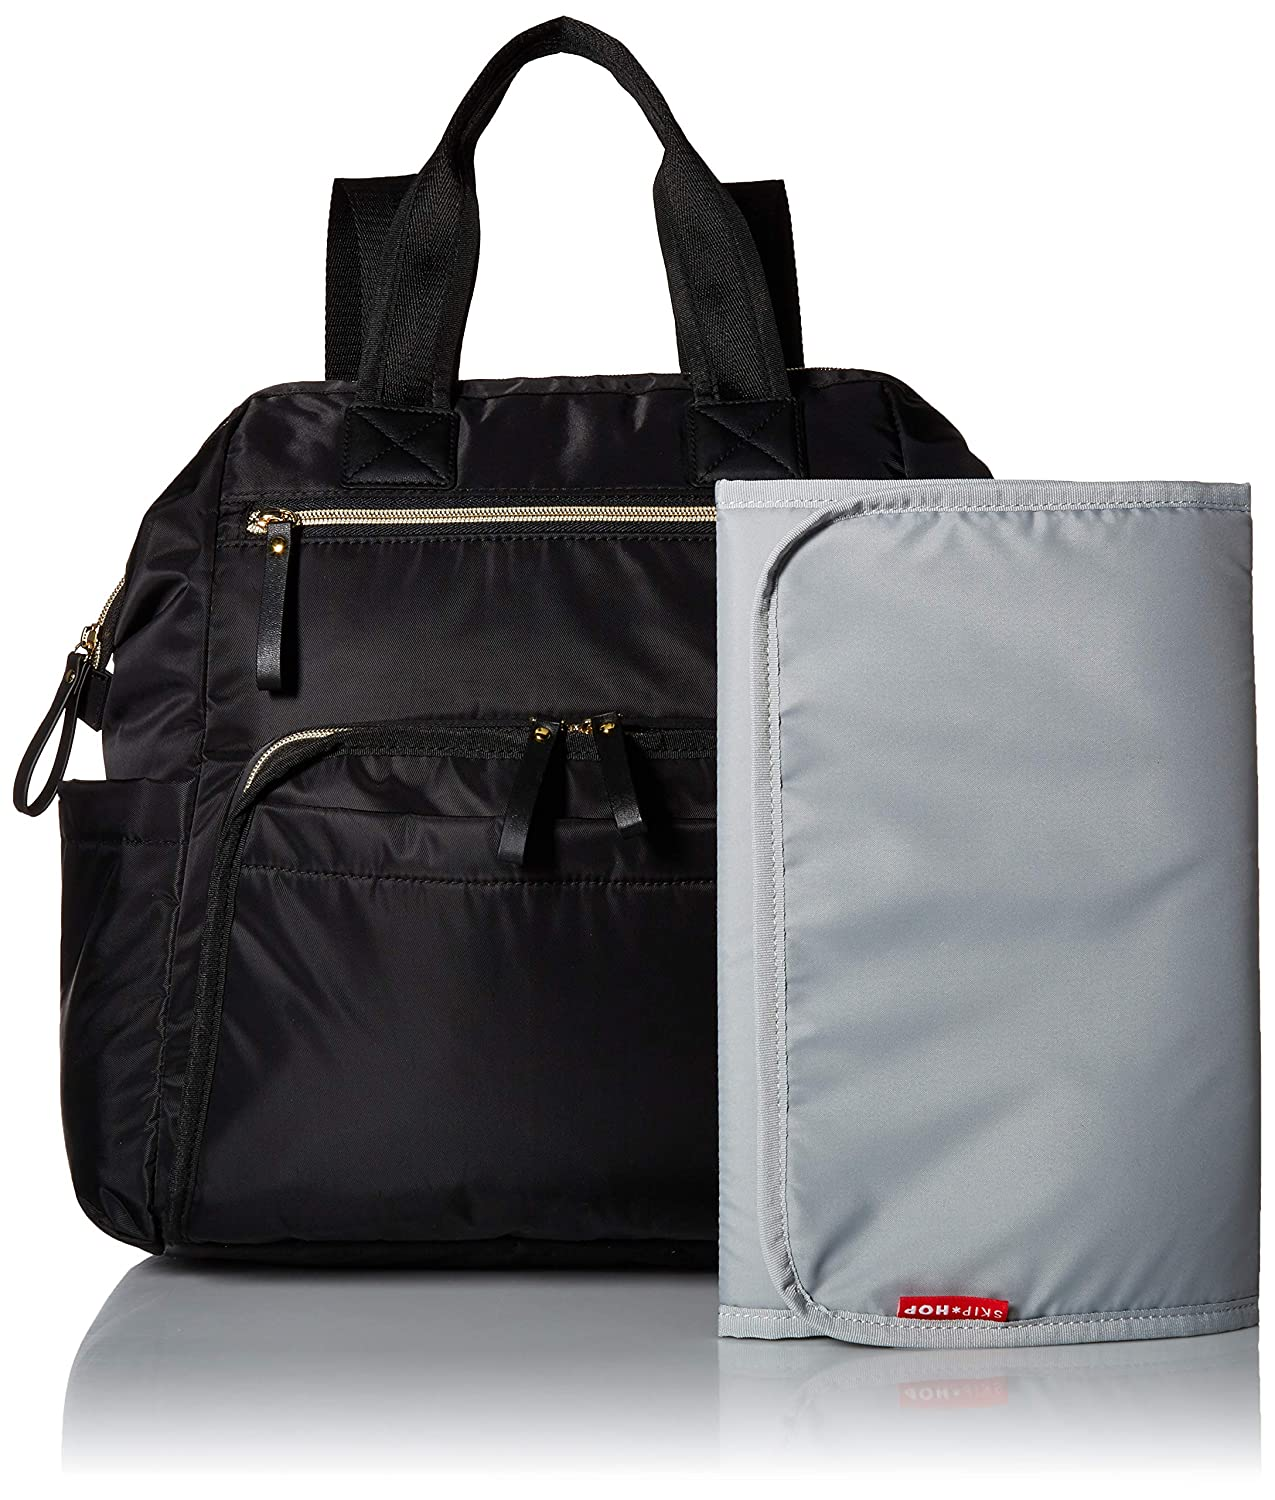 6cace3e53cdc01 Amazon.com : Skip Hop Diaper Bag Backpack, Mainframe Large Capacity Wide  Open Structure, Black with Gold Trim : Baby